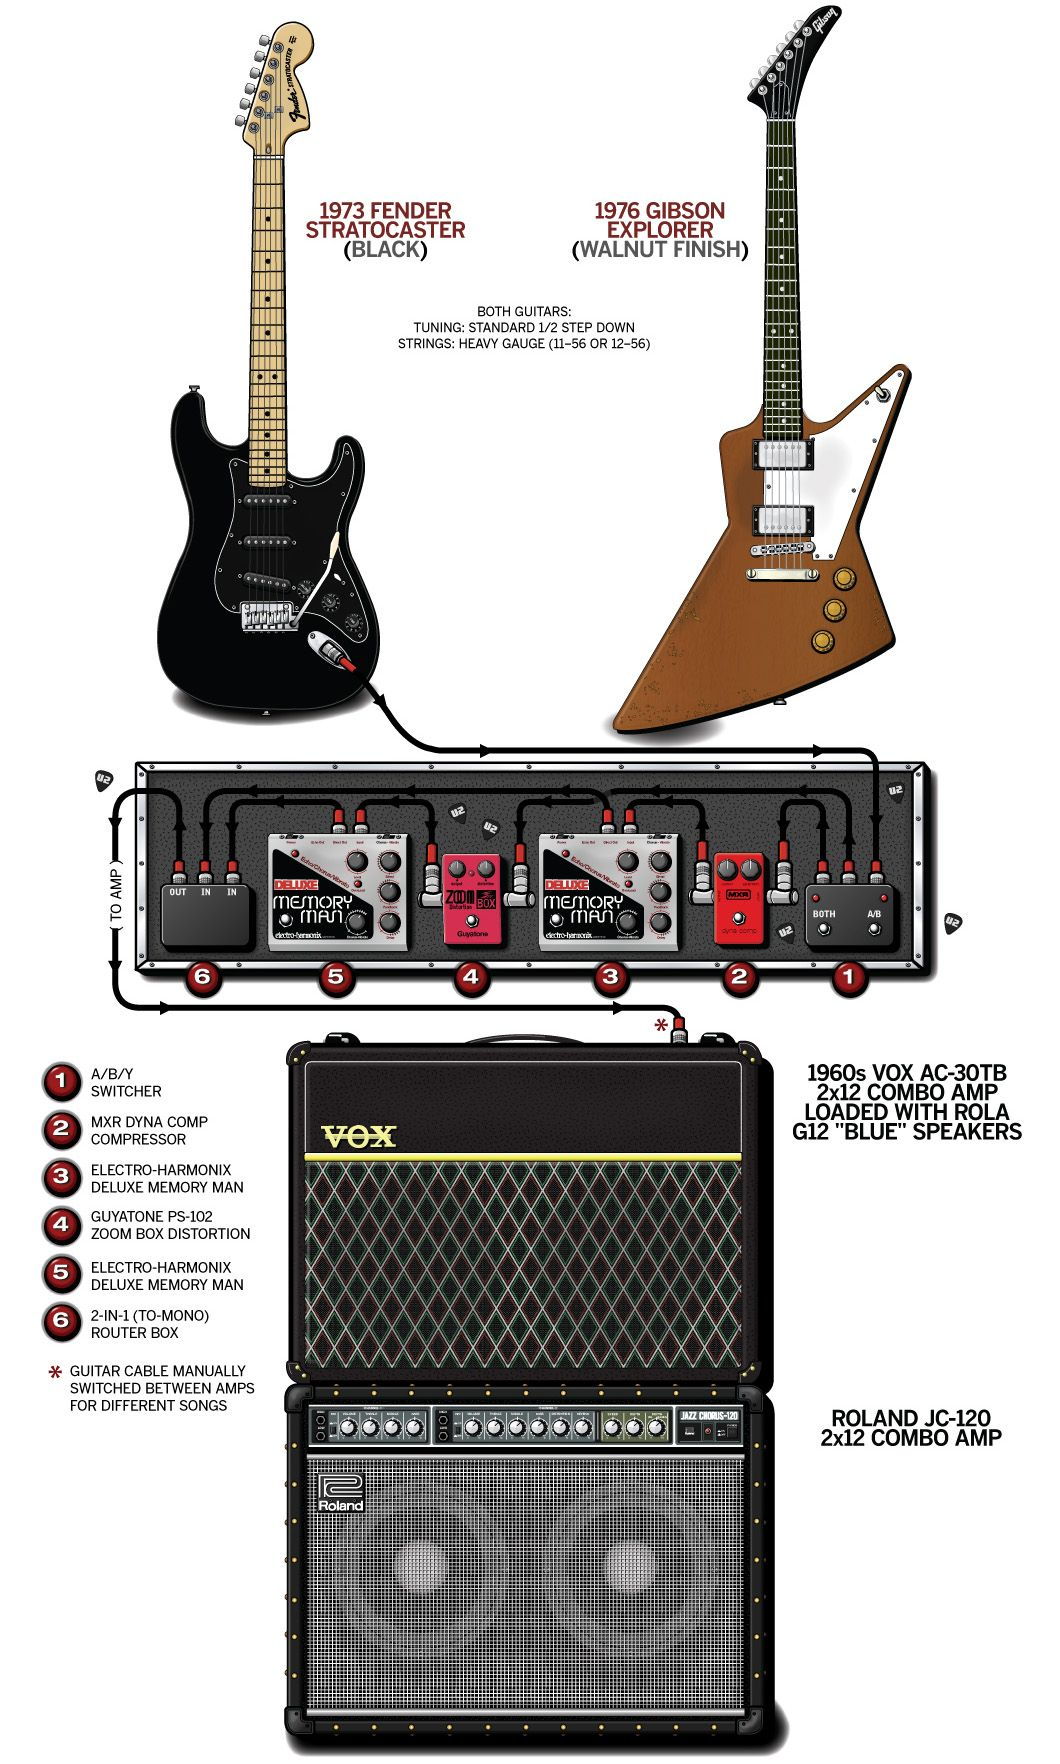 Guitar Rig Diagram 1985 Chevy Truck Radio Wiring The Edge U2 1983 S With Detailed Kelly Richey Gear Pinterest And